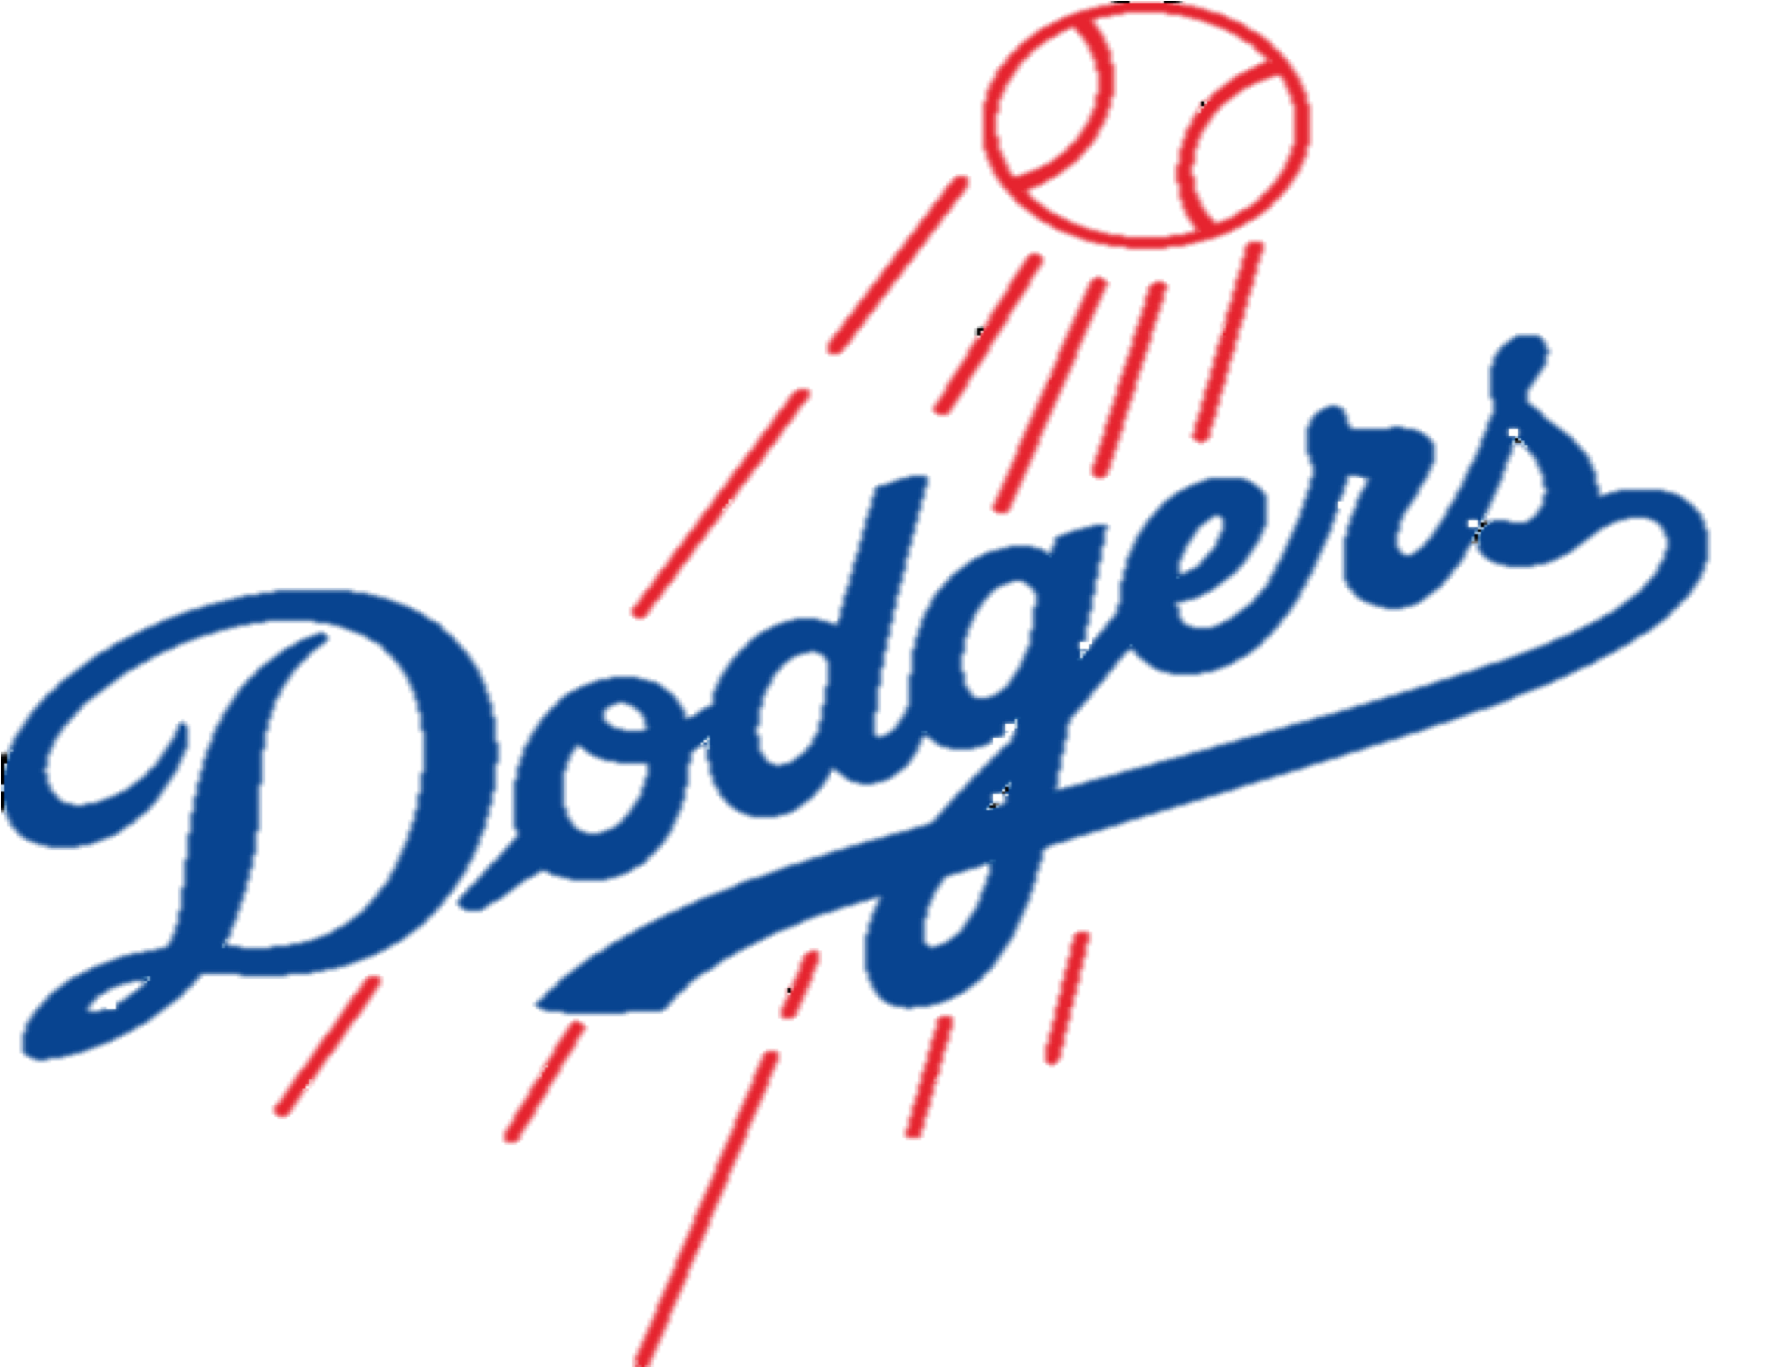 Dodgers vector. Dodger logos wallpapers search clipart download